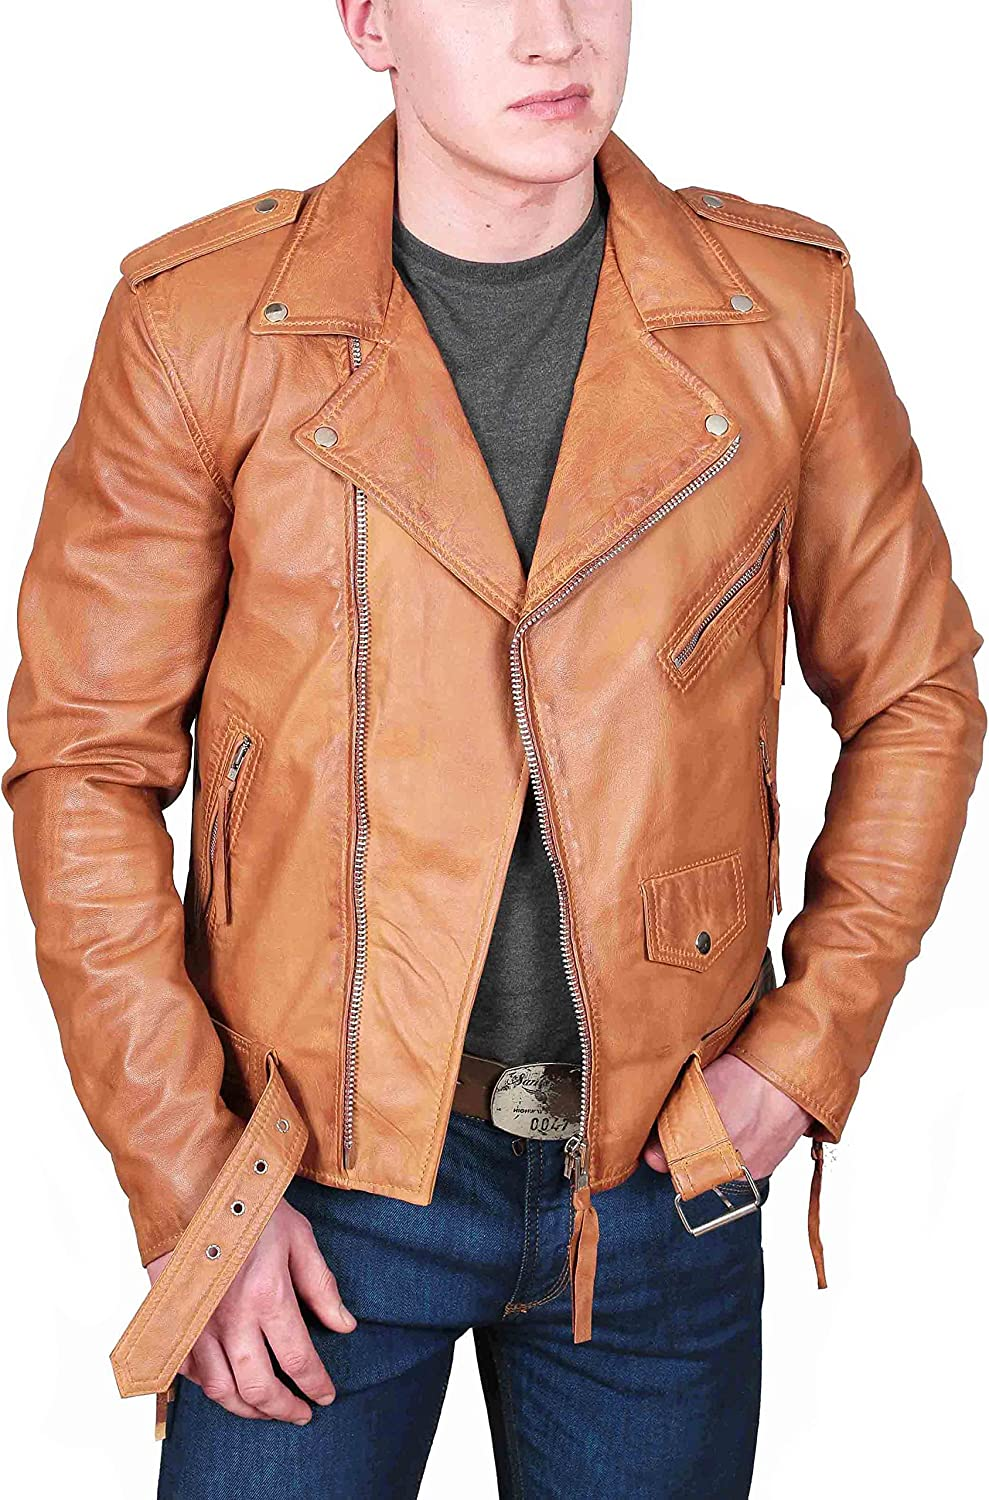 Mens Tan Leather Biker Jacket Fitted Free Shipping New color Cheap Bargain Gift Styl Brando With Retro Belt